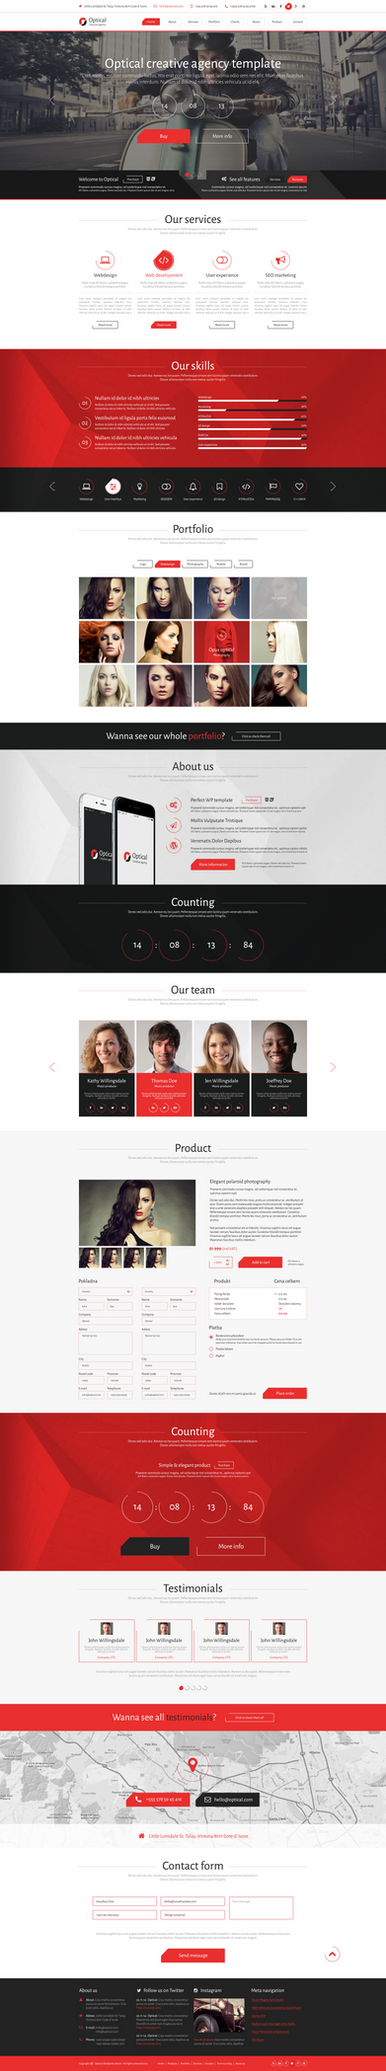 Optical Wordpress template by JakubSpitzer